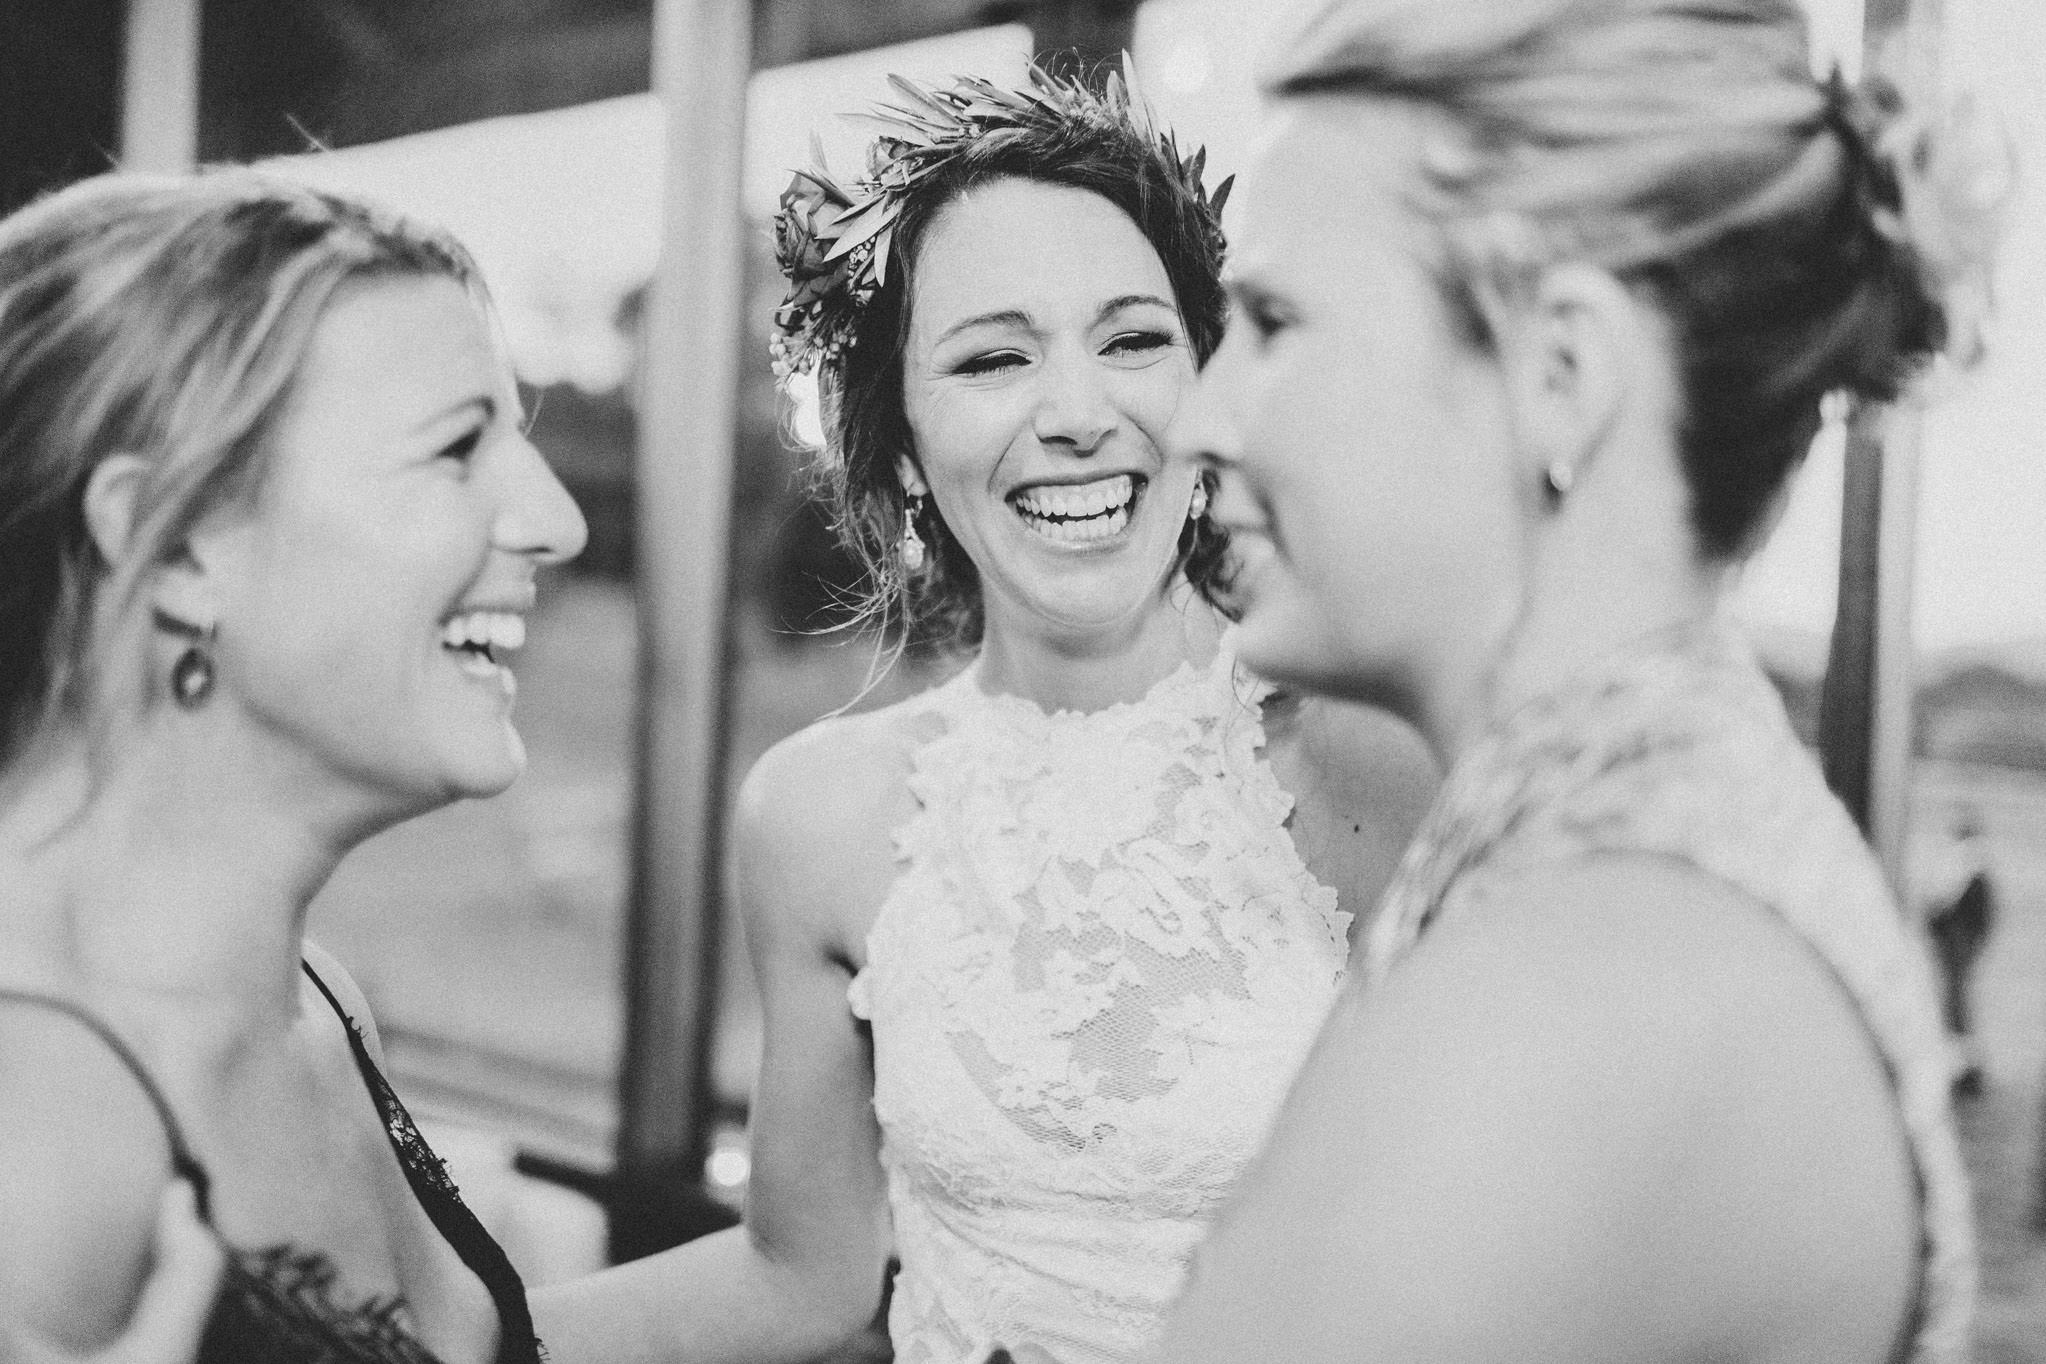 TocalHomestead_WeddingPhotography_LaurenAnnePhotography-1145.jpg